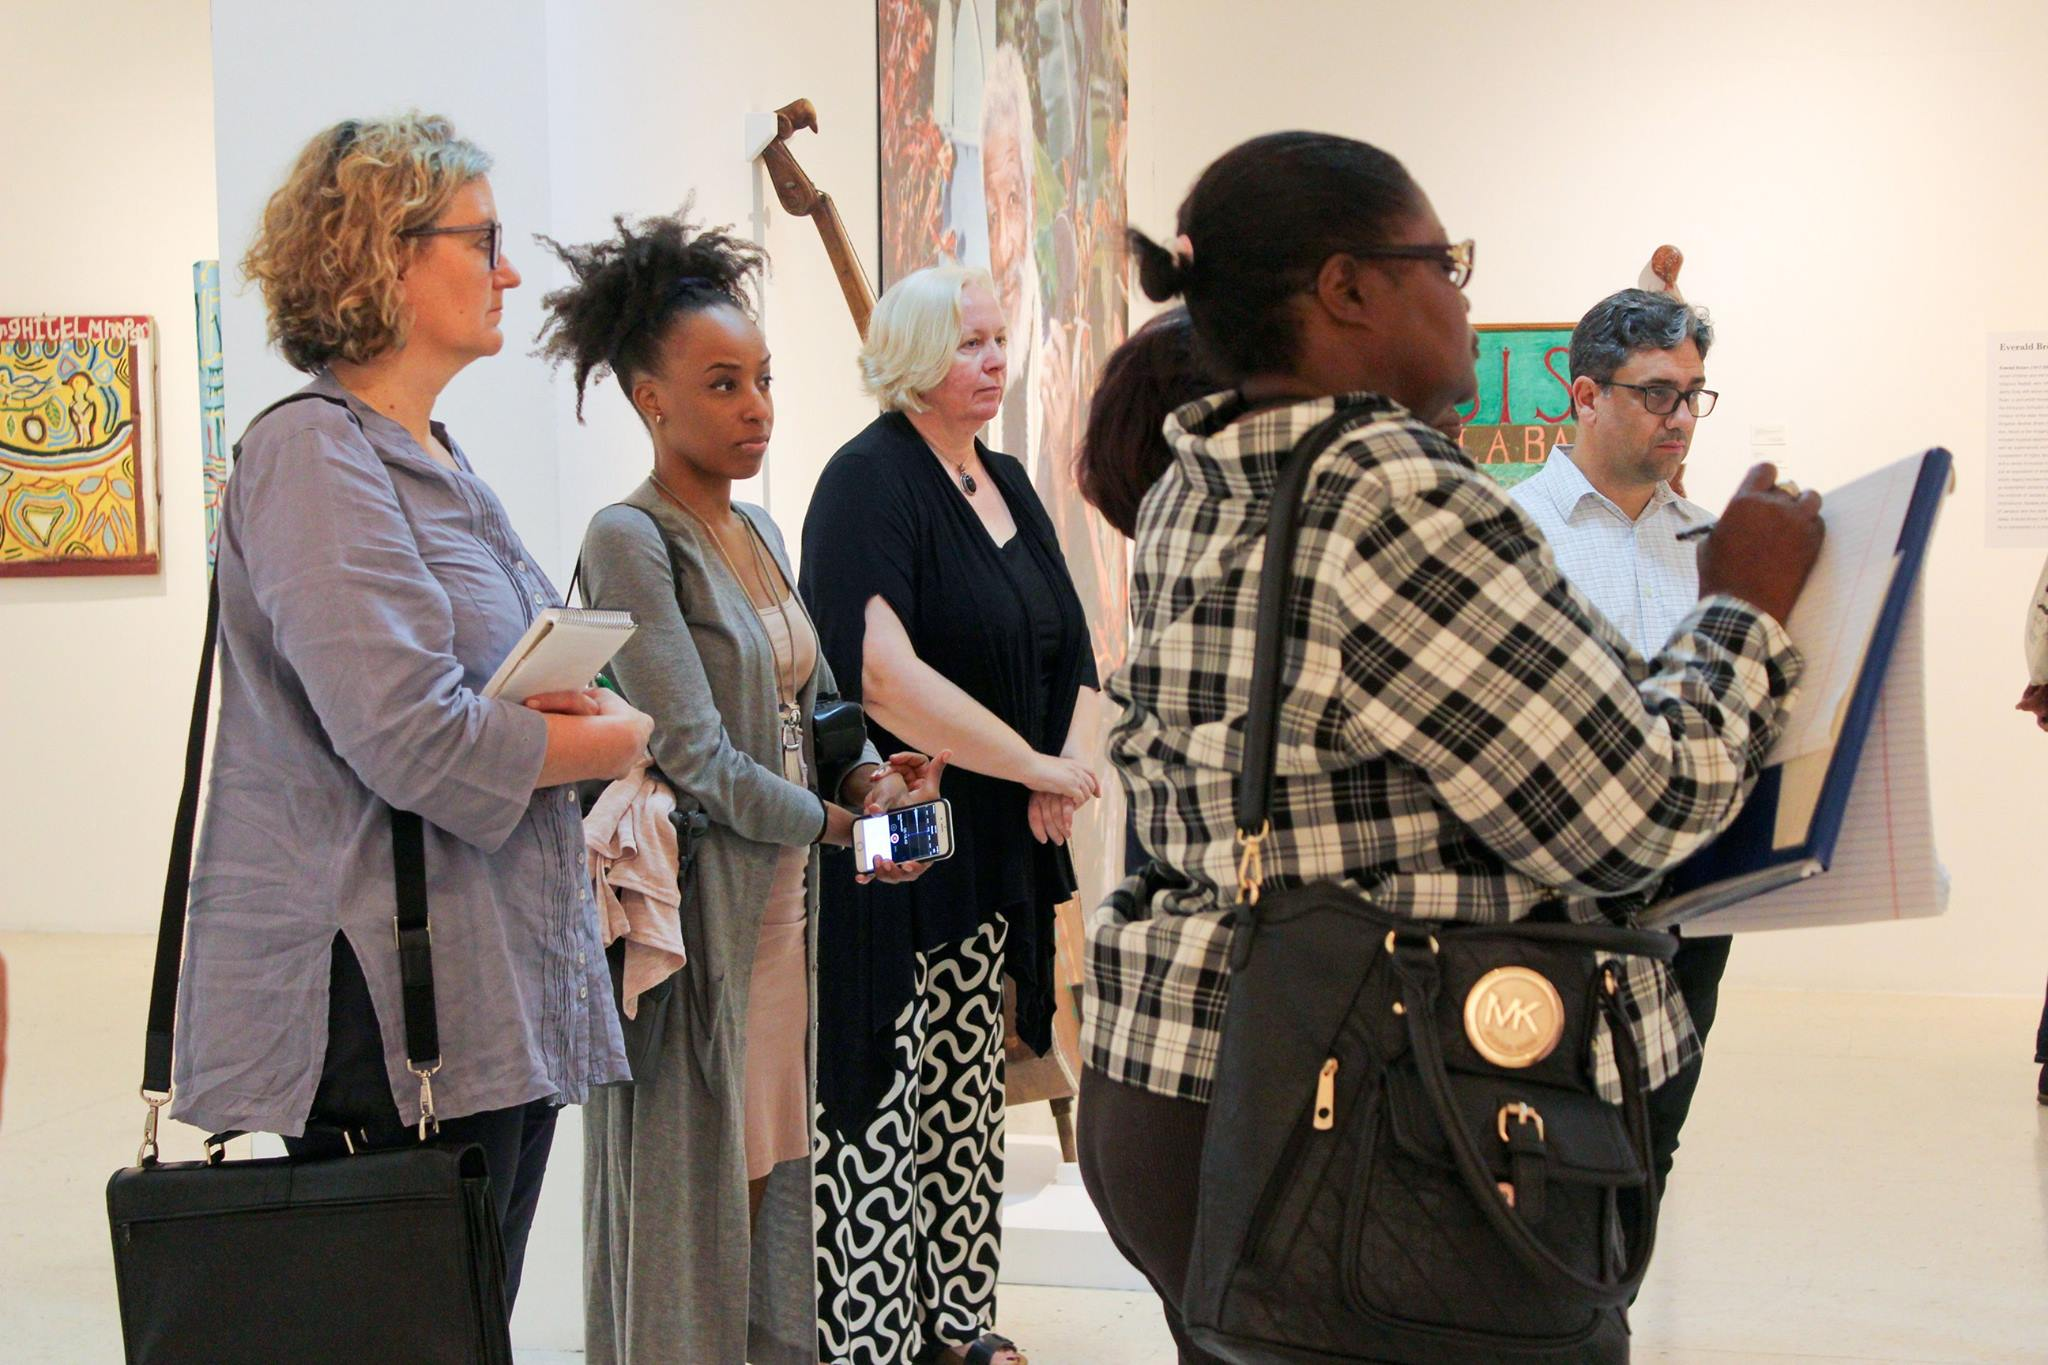 'Creative Journalism Workshop partners, facilitators, and participants visit the National Gallery of Jamaica. From Left: Claire Armitstead, Keisha Oliver, Dr. Veerle Poupeye, Joan Francis and Gean Moreno.